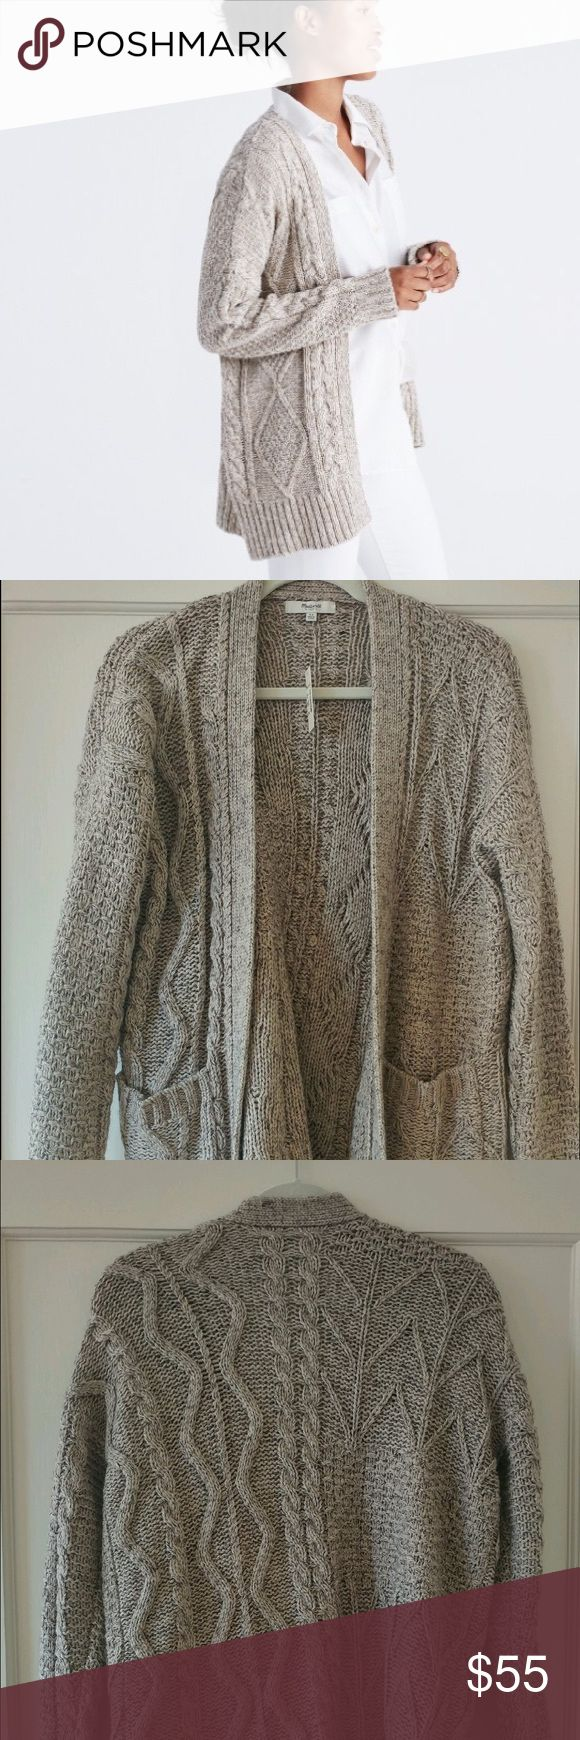 Madewell Chunky Cableknit Sweater Super cozy open cardigan from madewell. Sold out everywhere! Wear it with a neutral tee and leggings for the ultimate winter outfit. No tags but has never been worn. Madewell Sweaters Cardigans